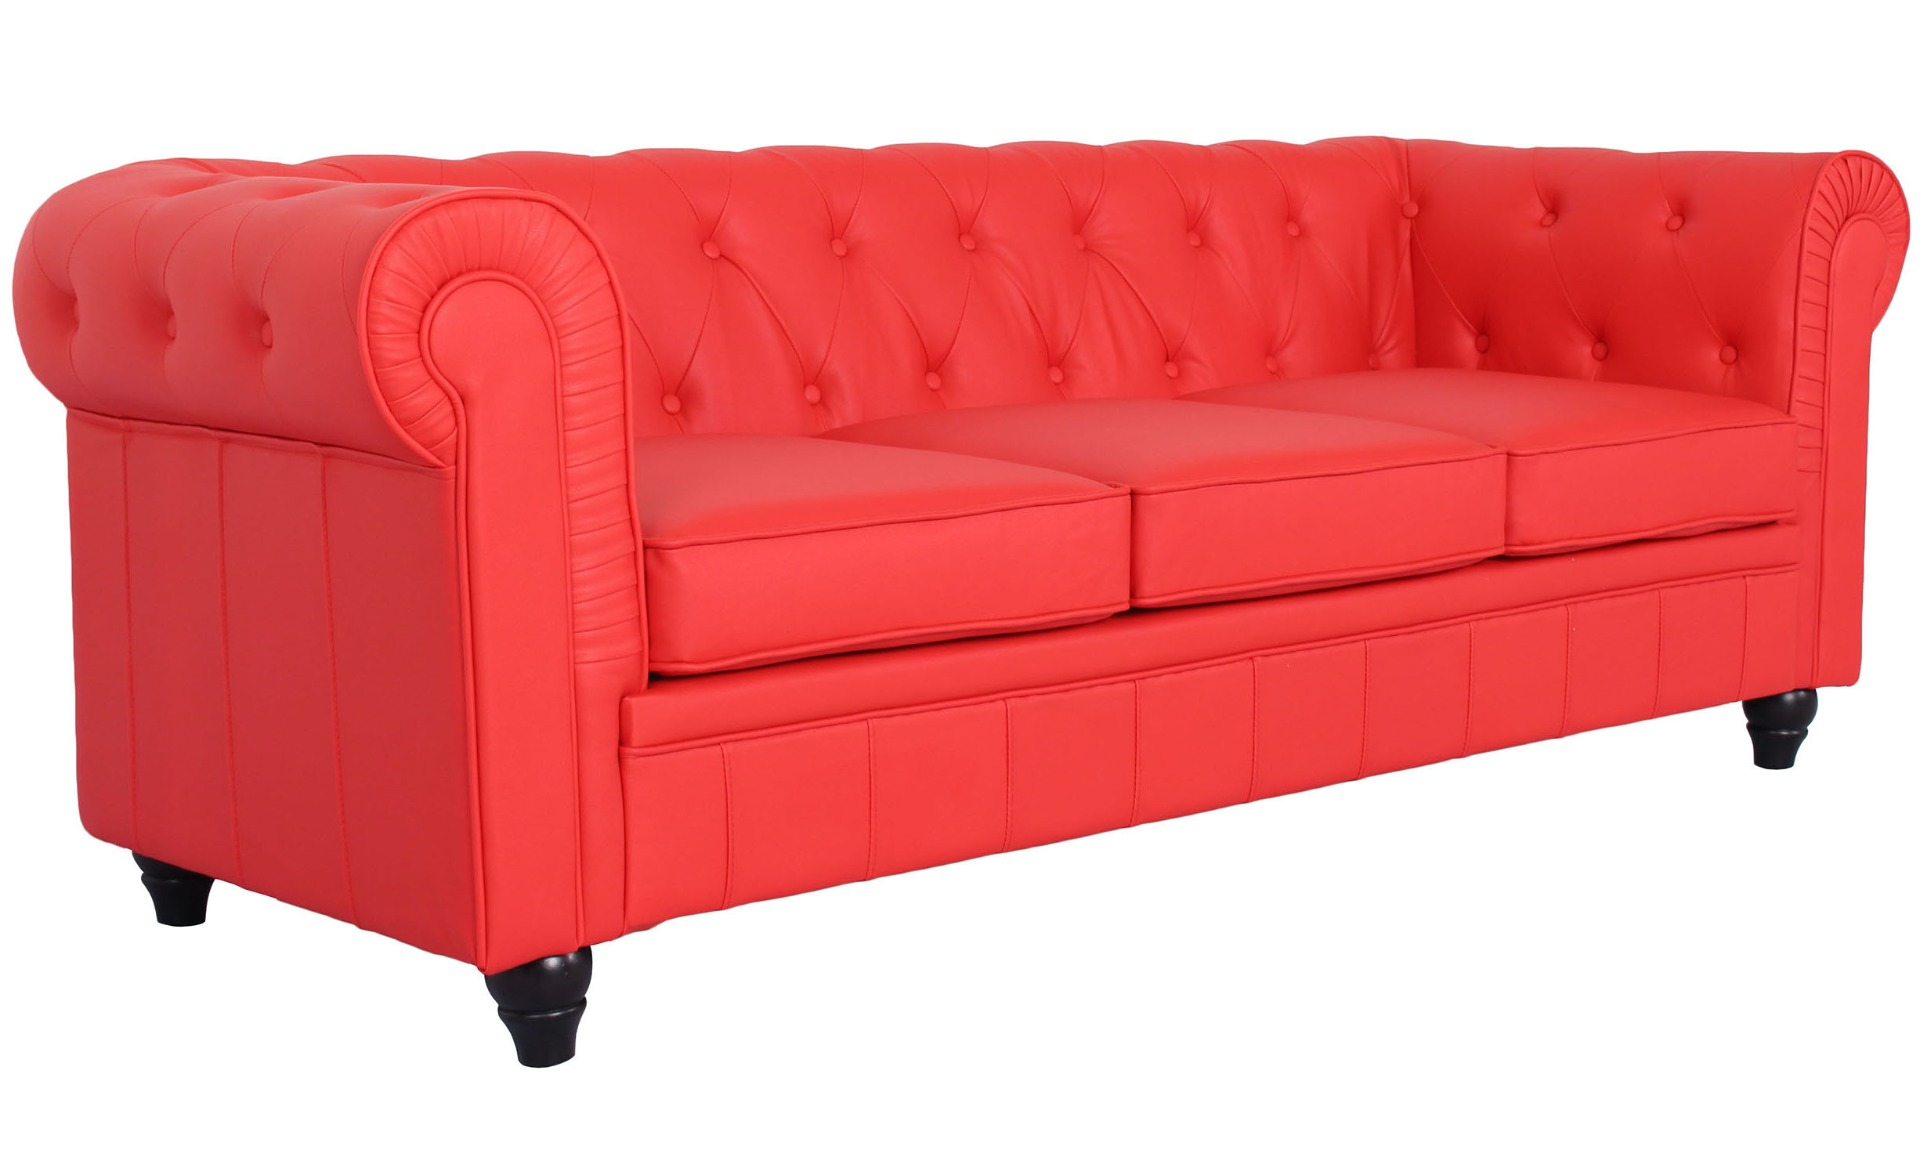 Grand Canapé Chesterfield 3-Sitzer Sofa Rot